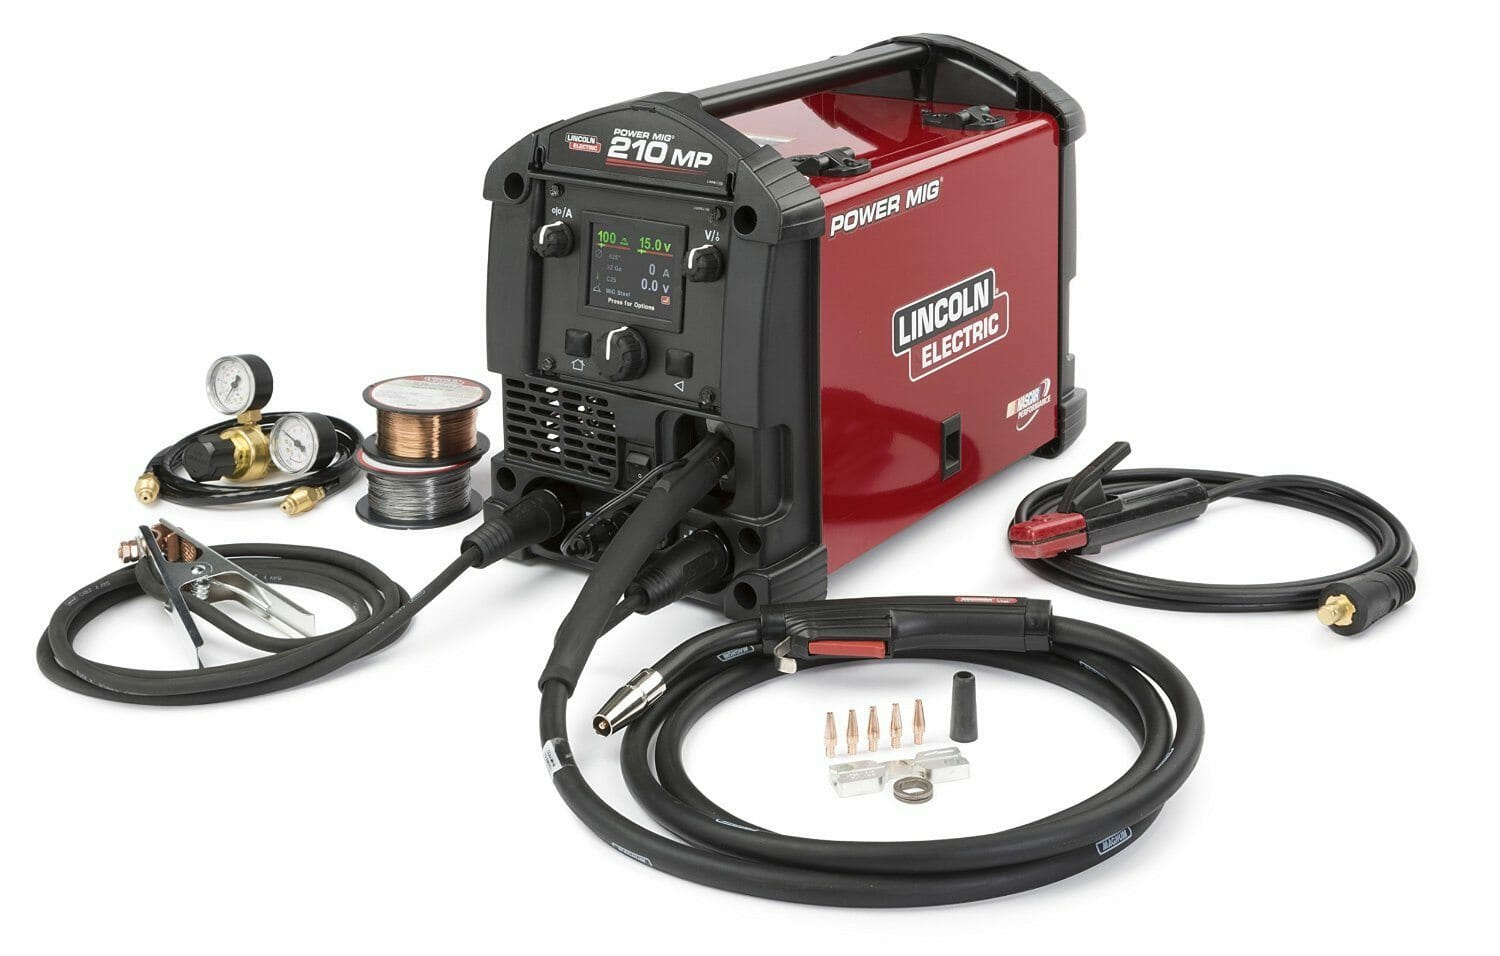 Lincoln MIG 210 Welder Review - CromWeld.com